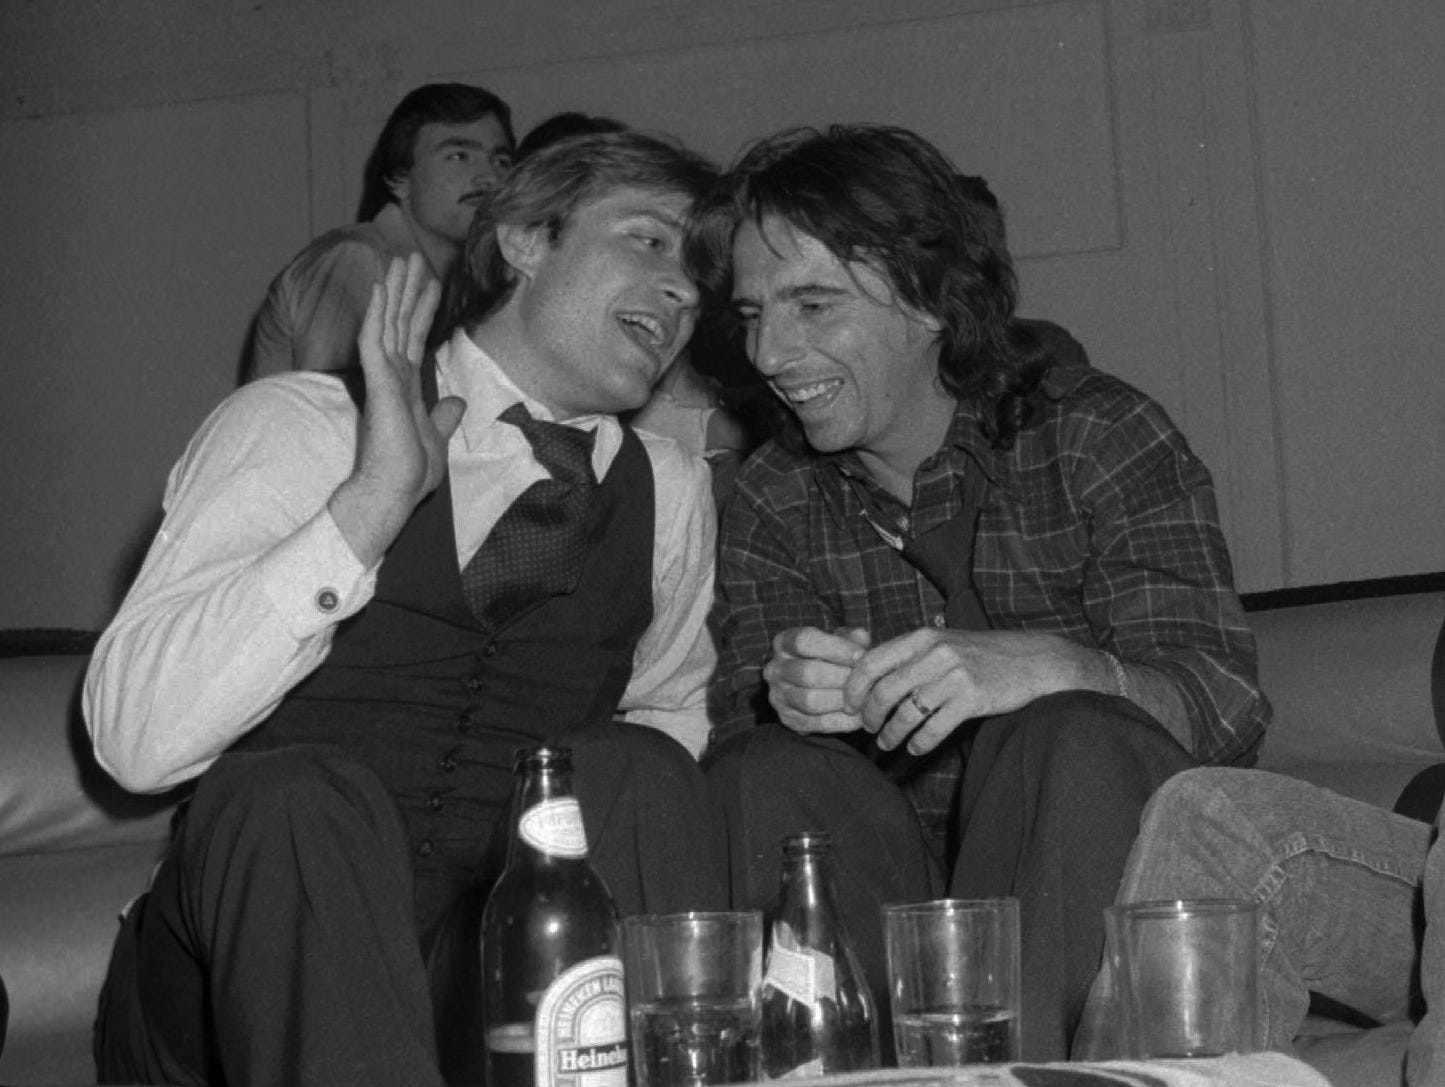 Jack Ford (left), son of former President Gerald Ford, talks with Alice Cooper at Studio 54 in 1978.